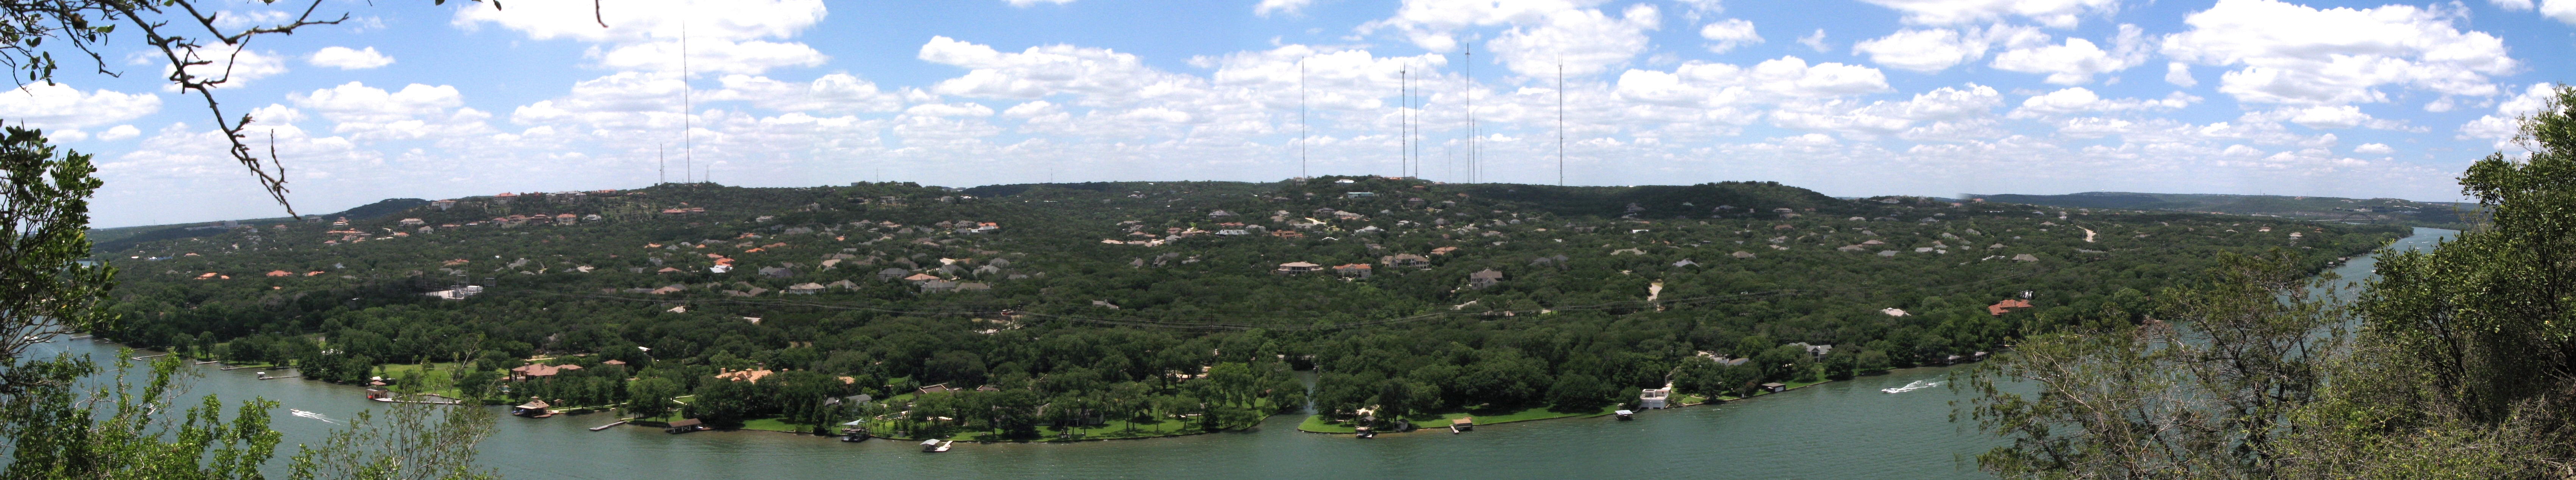 Panoramic view of Colorado River looking west off Mount Bonnell